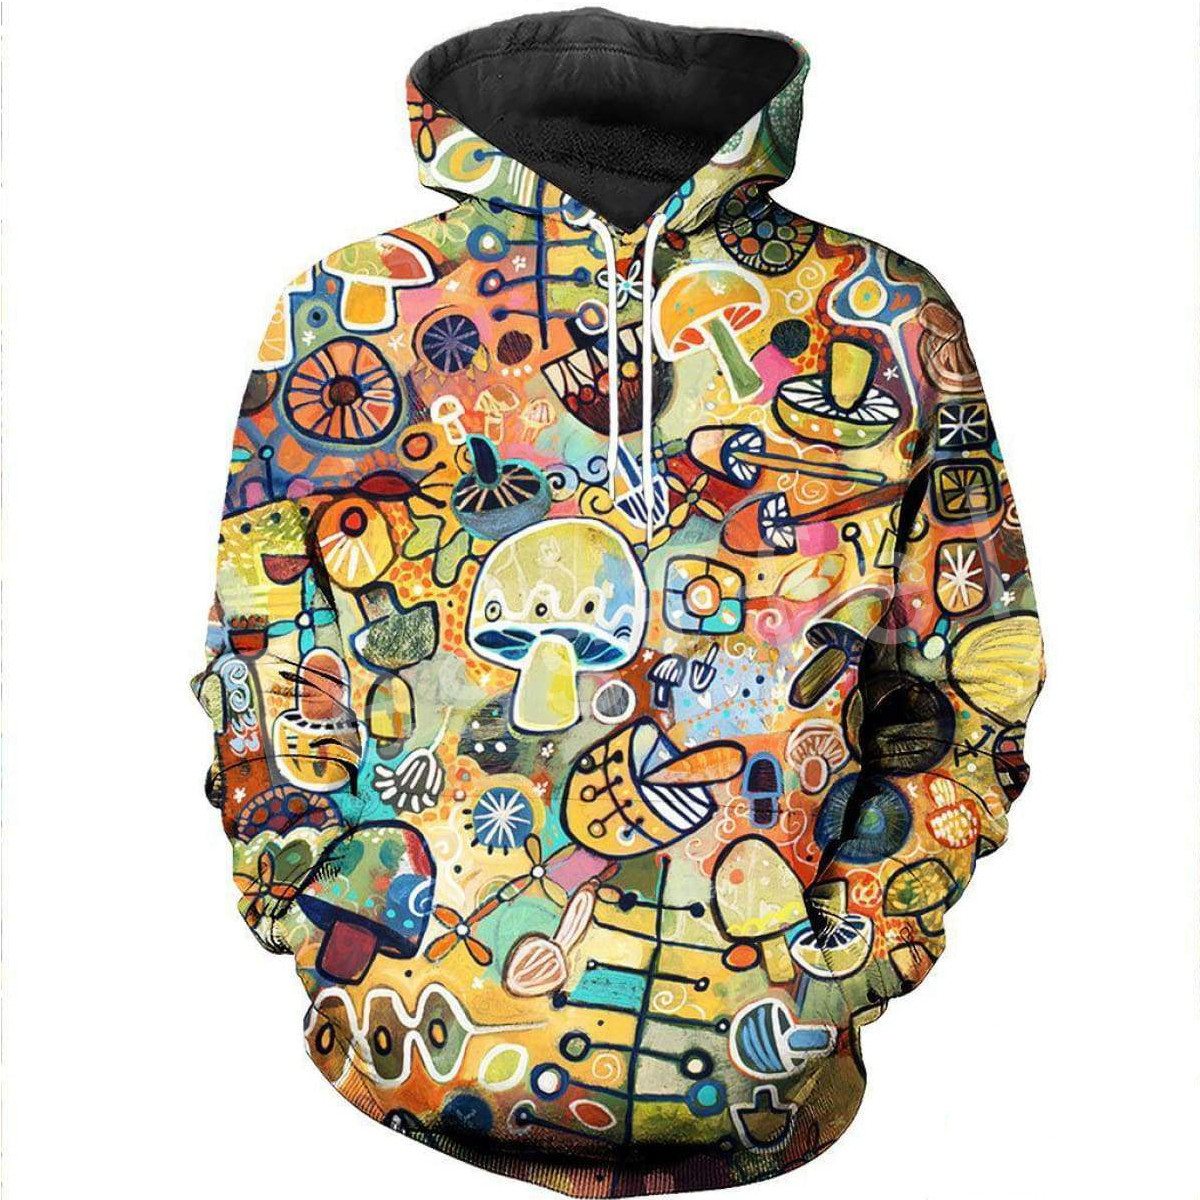 Tessffel Mushroom Colorful Tracksuit Unisex 3DPrint Hoodie/Sweatshirt/Jacket/Mens Womens HIP HOP Cartoon Casual Style-1